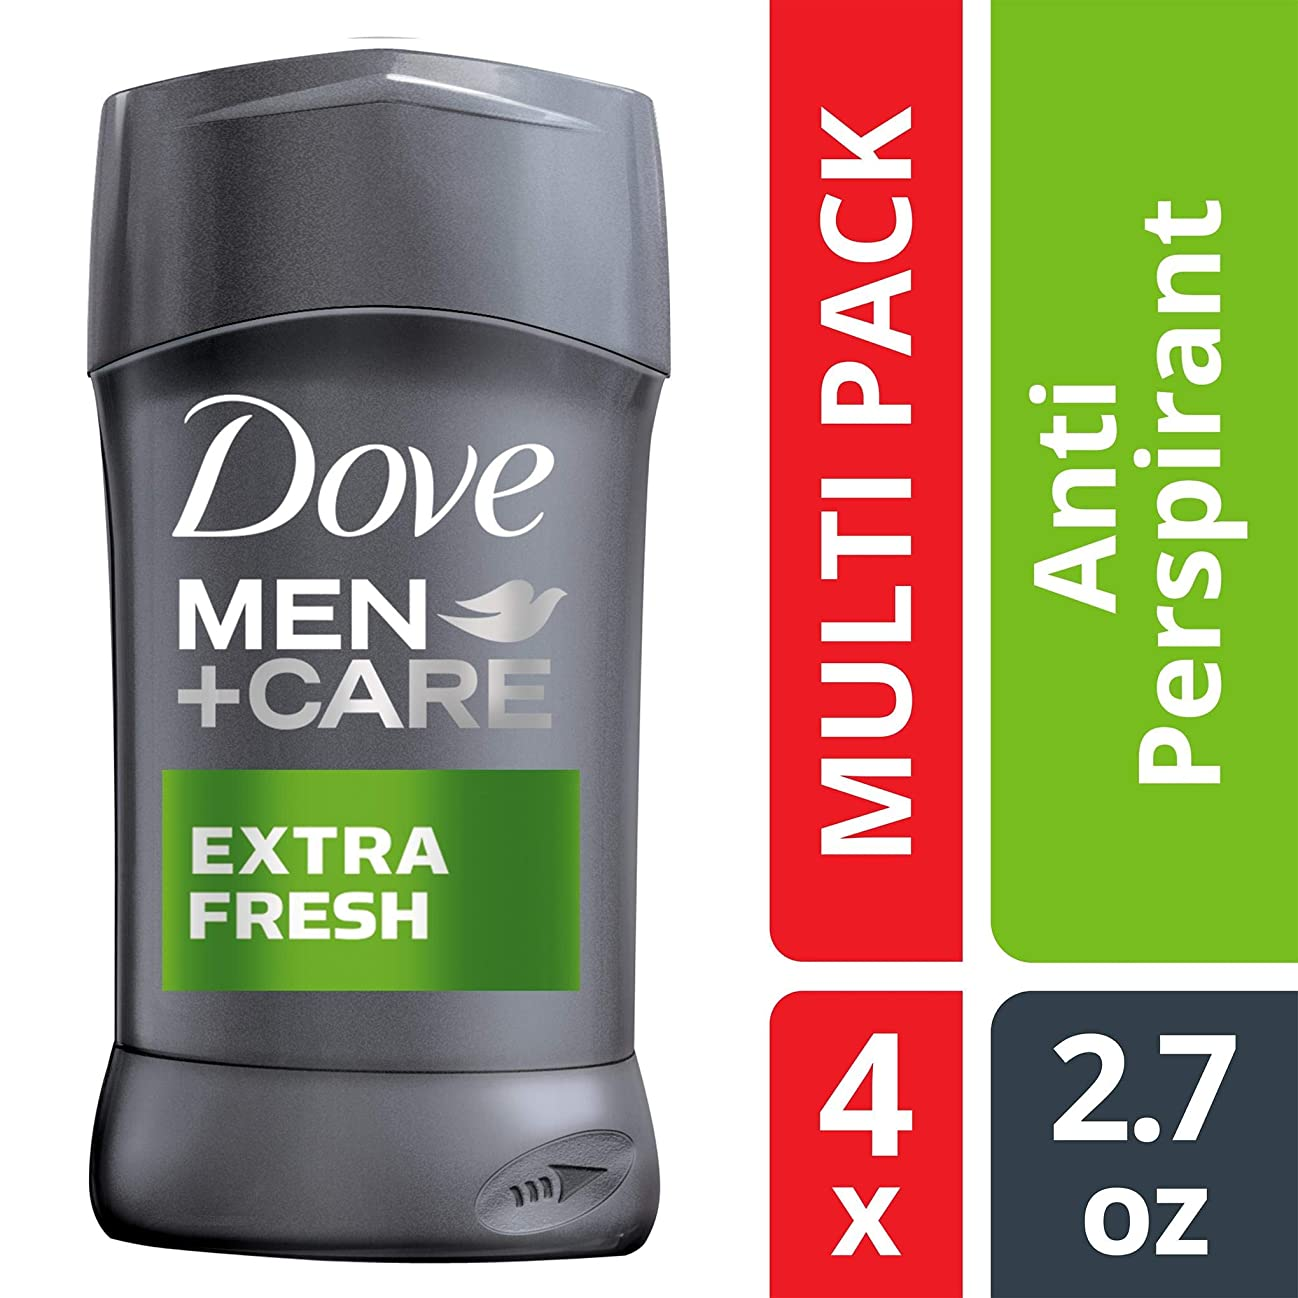 Dove Men+Care Antiperspirant Deodorant Stick, Extra Fresh, 2.7 oz, 4 count ( Packaging may vary ) zxlft848467